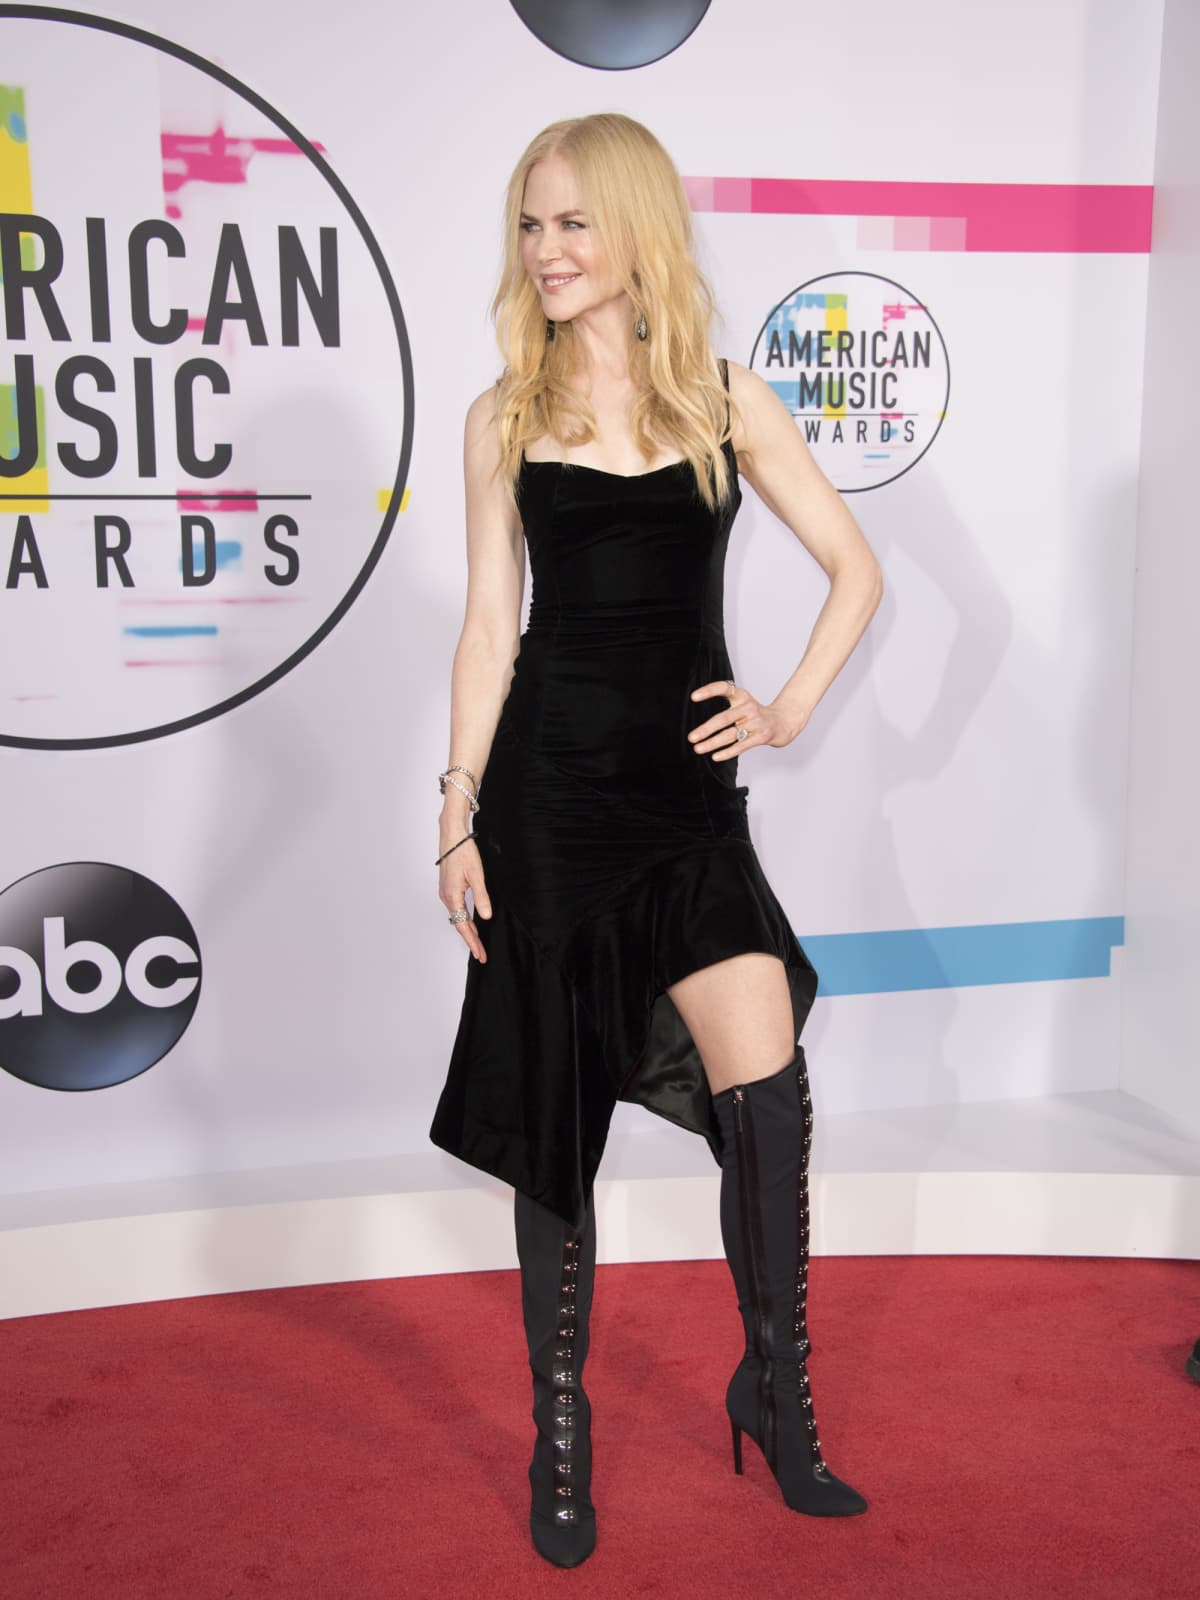 American Music Awards Nicole Kidman